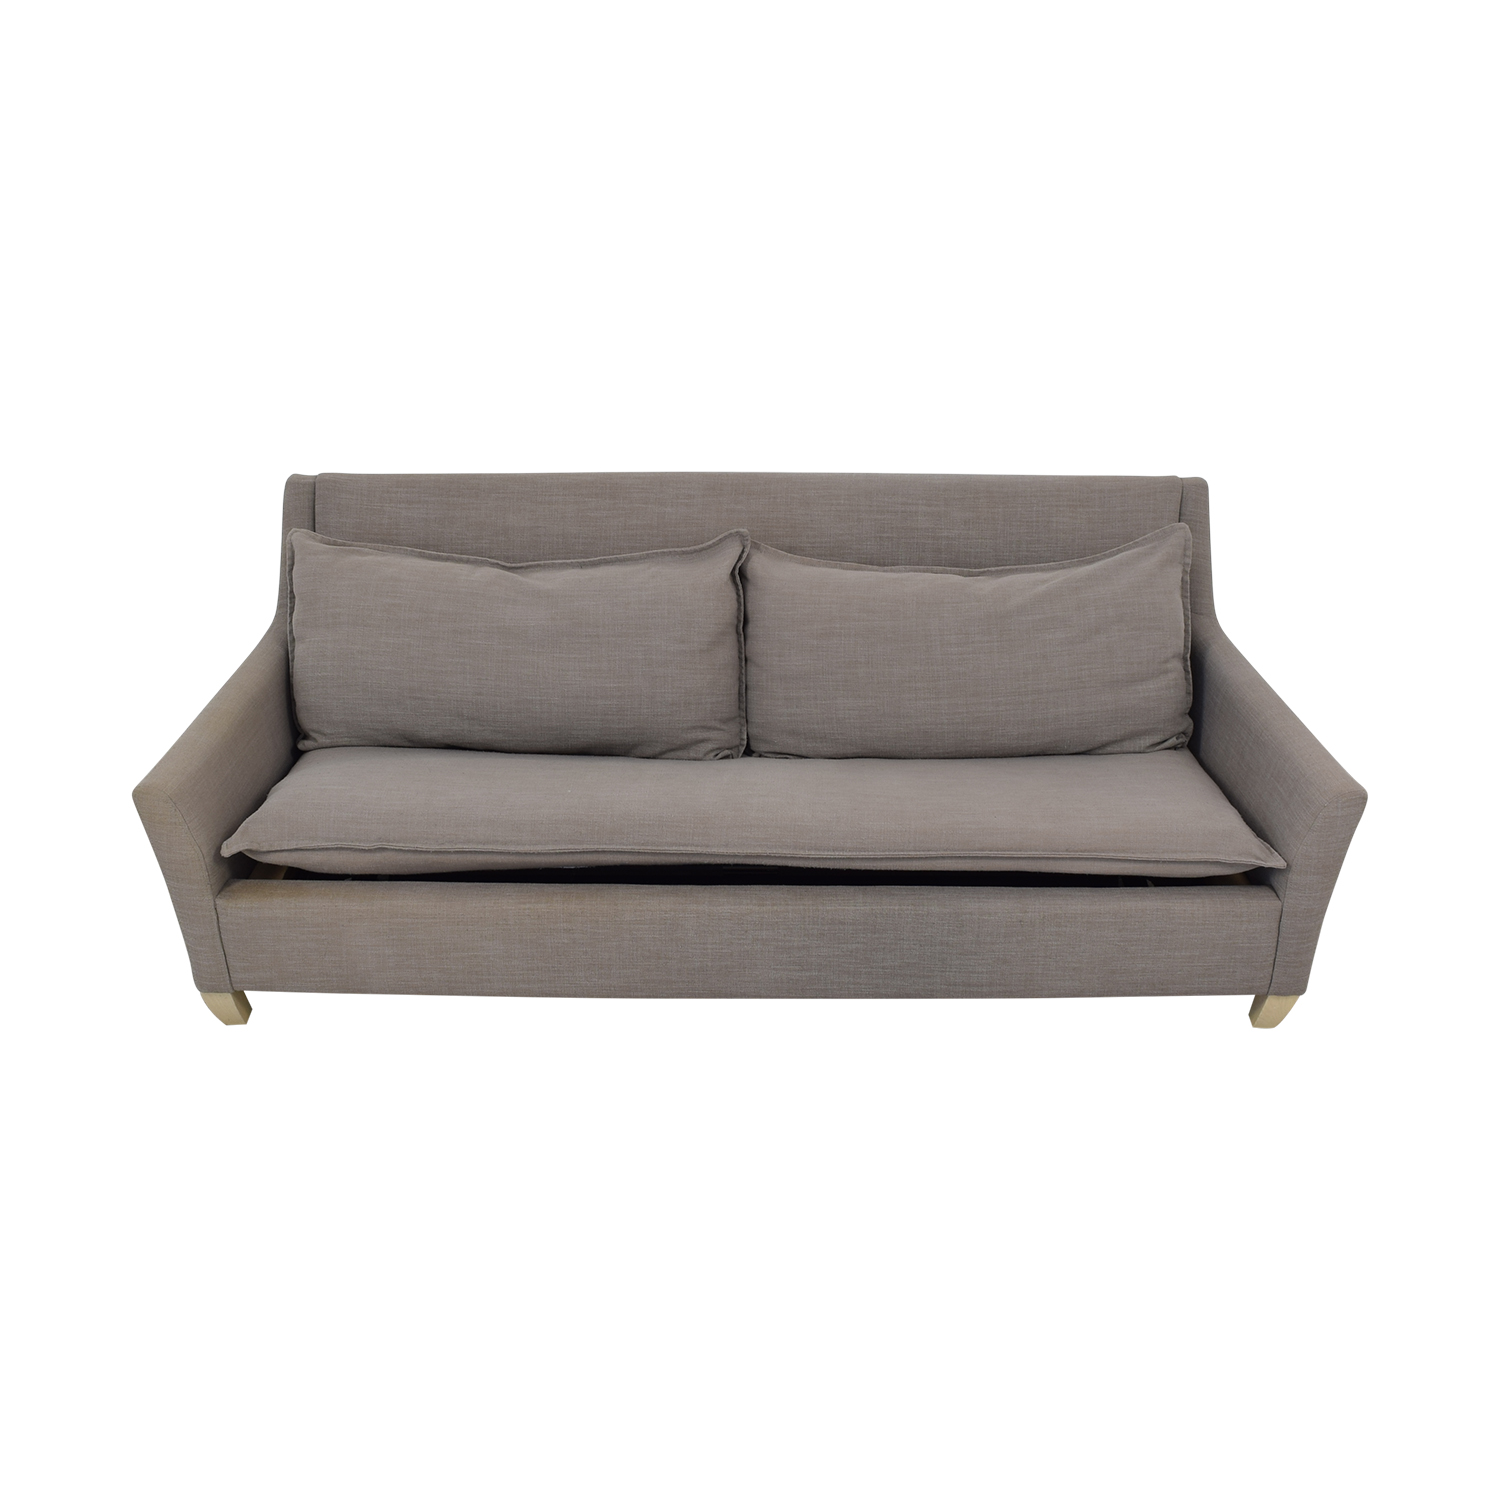 West Elm West Elm Bliss Queen Sleeper Sofa dimensions